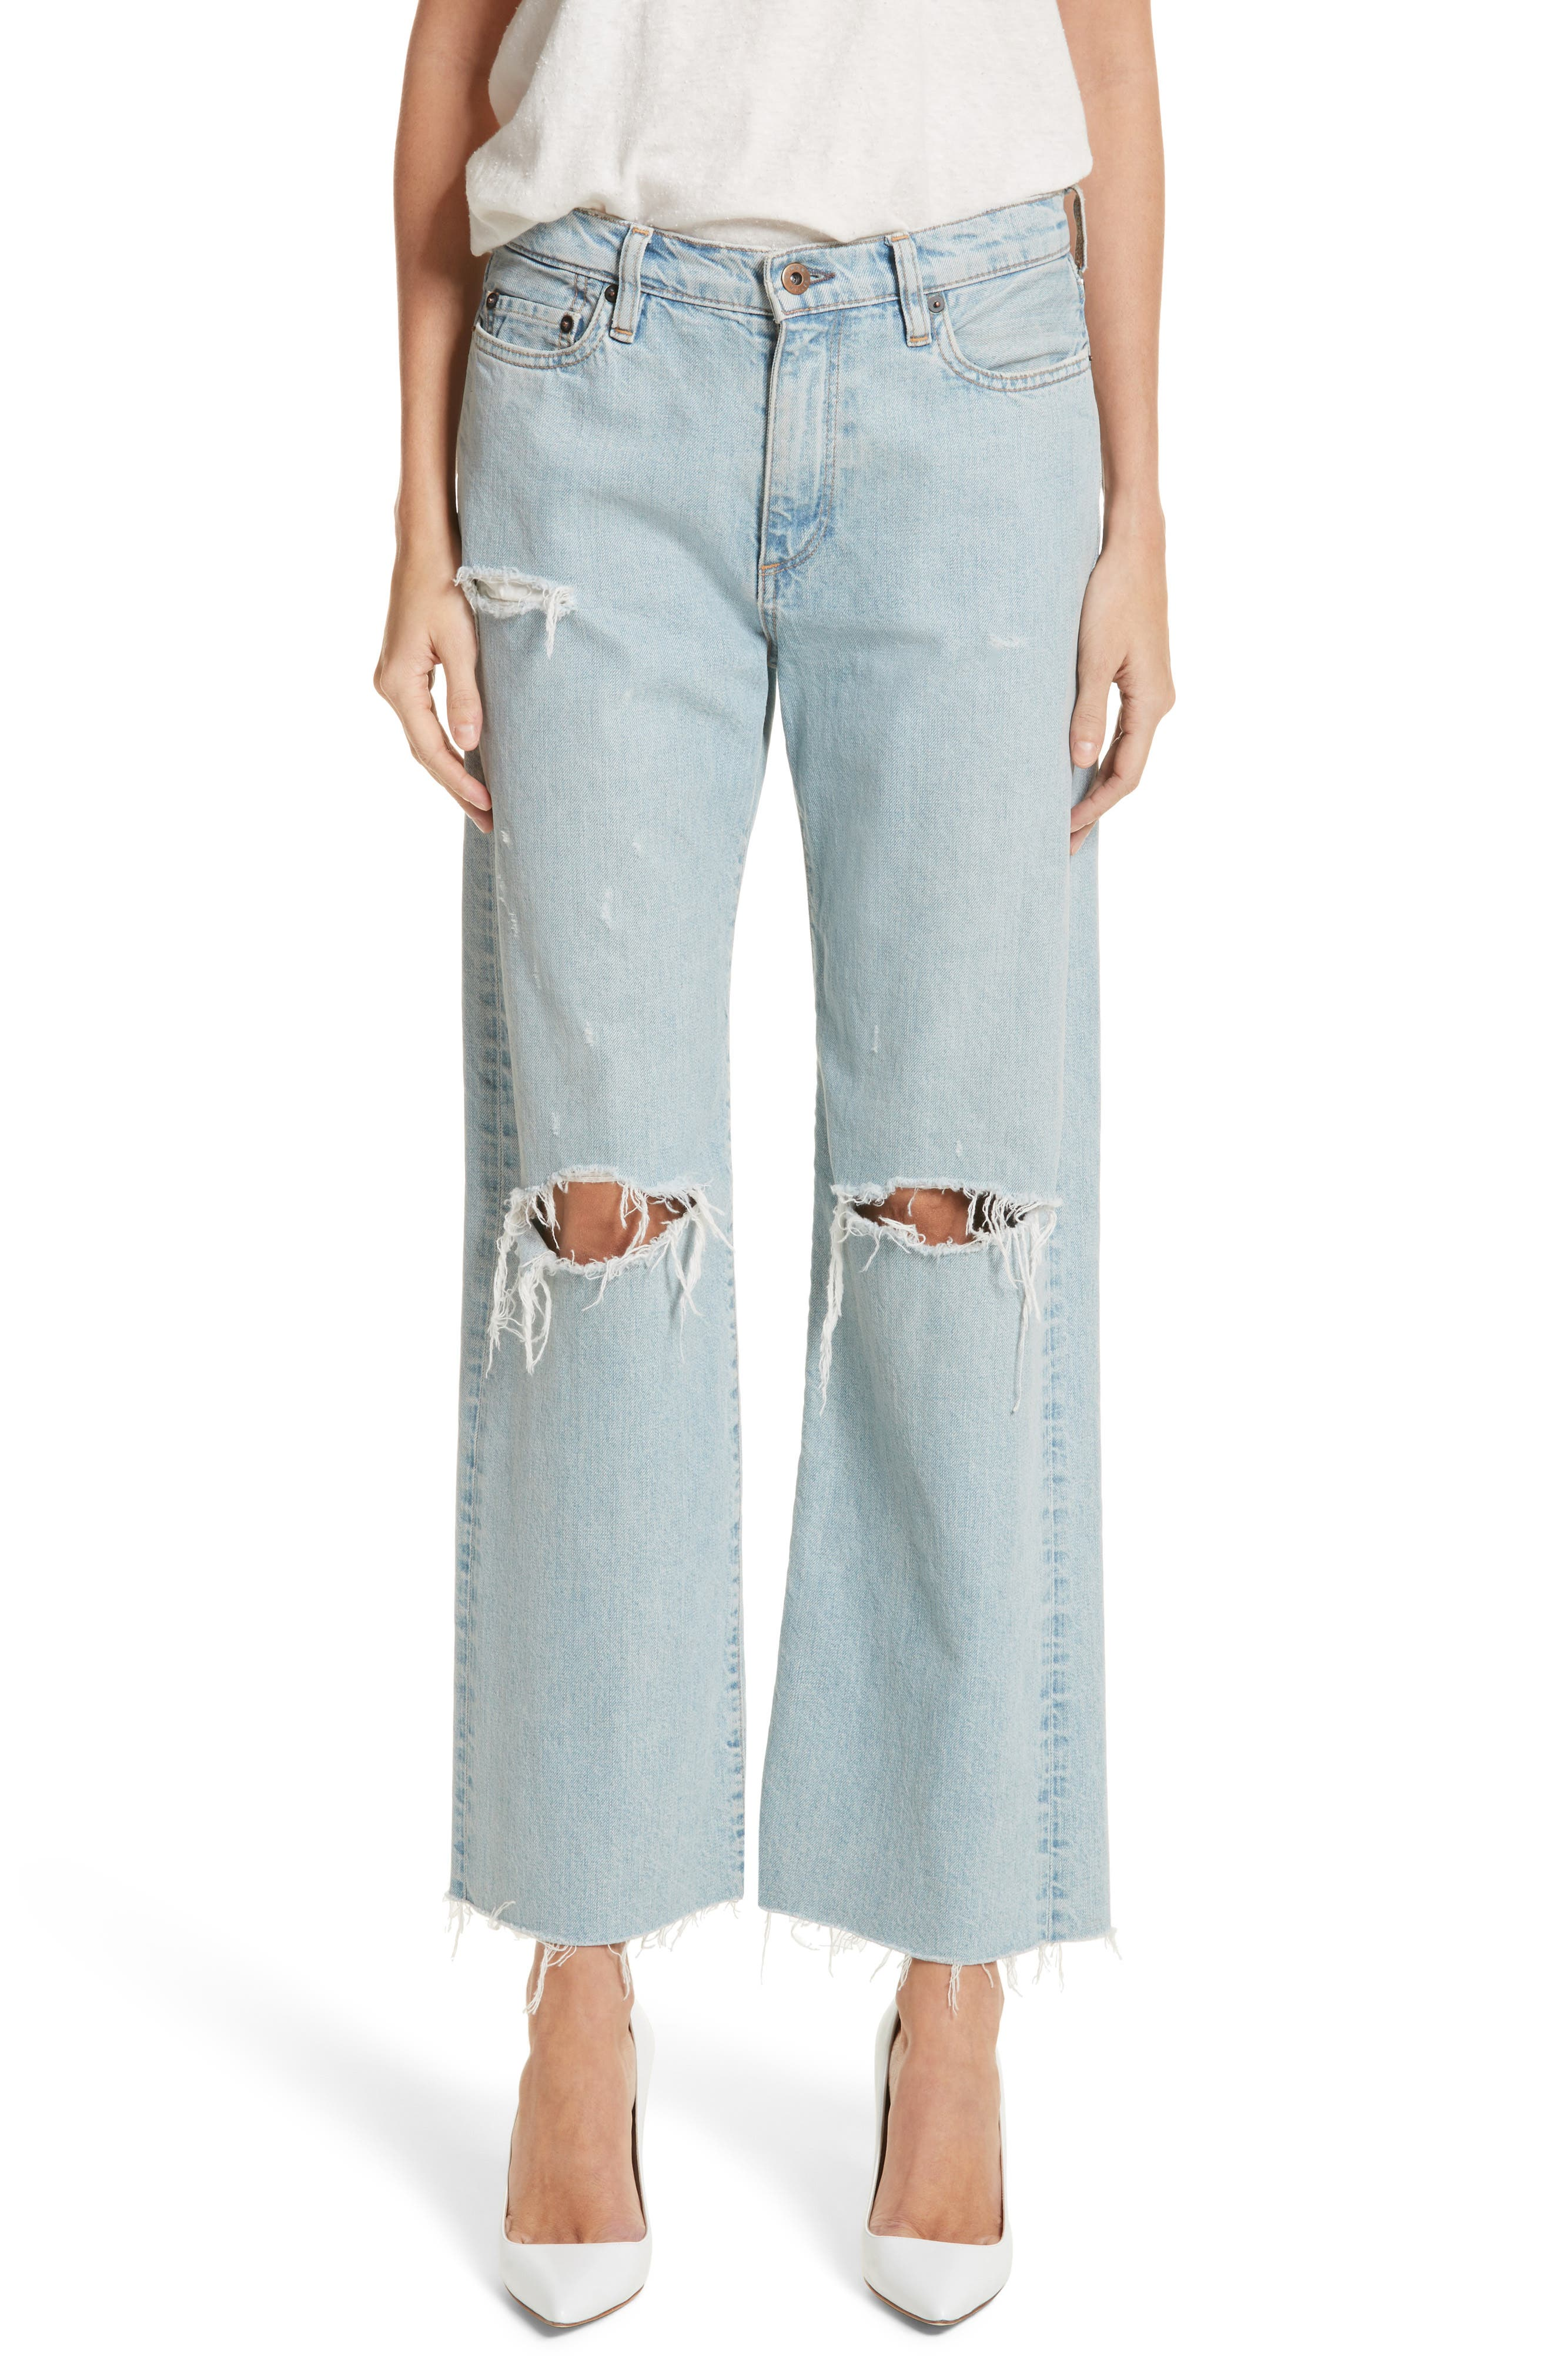 Simon Miller Tibbee Ripped Jeans (Light Indigo)